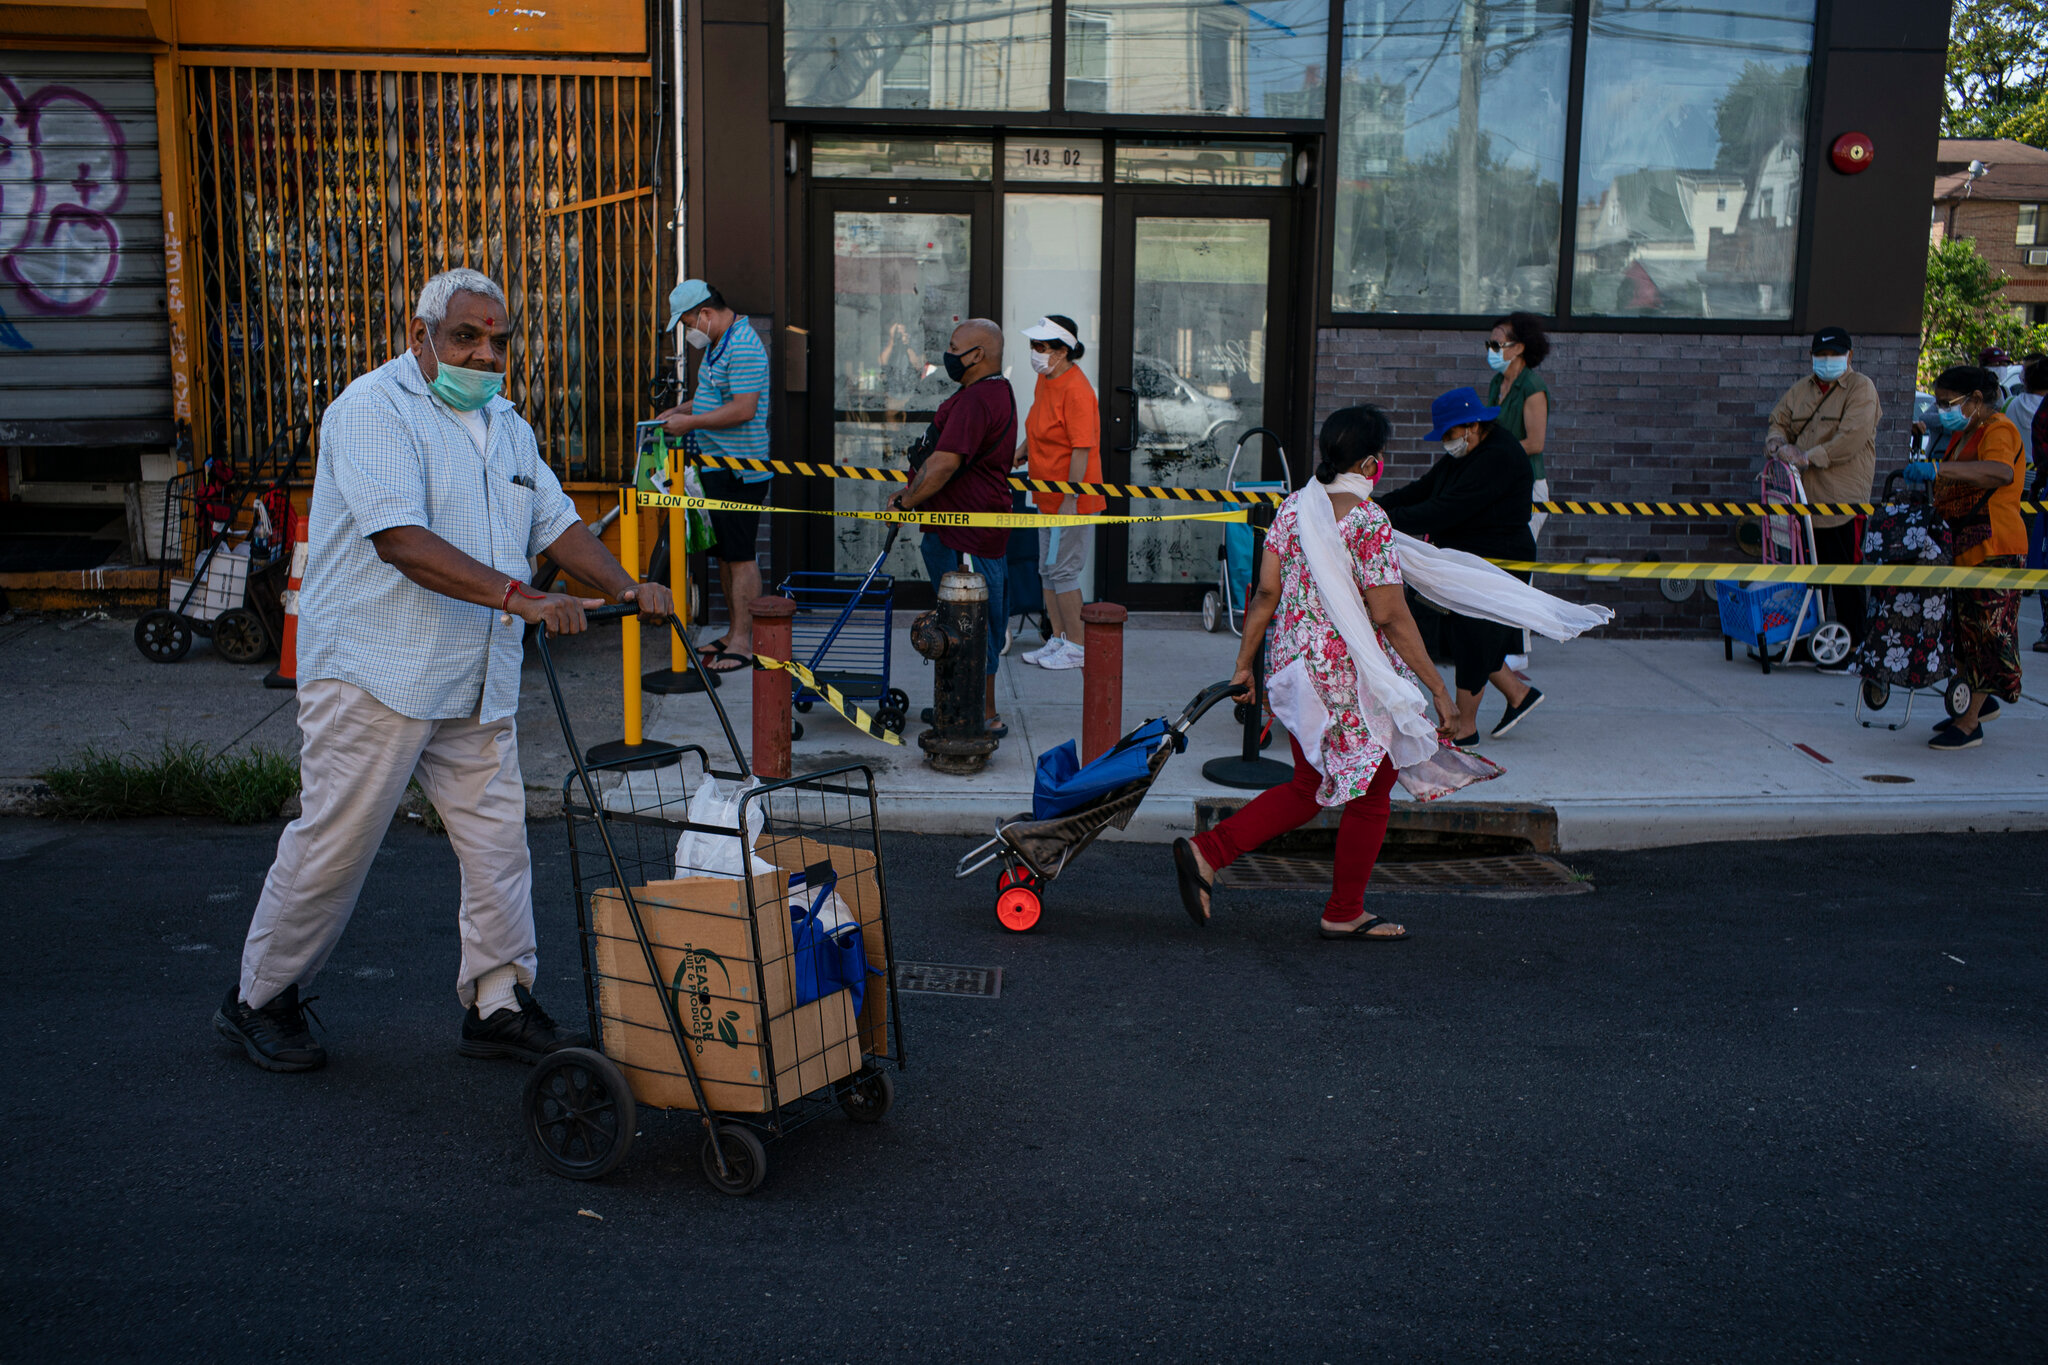 Pantries such as Masbia Soup Kitchen Network makes it possible that family like the Patel pick up food for free. The photo was taken by Todd Heisler of the New York Times